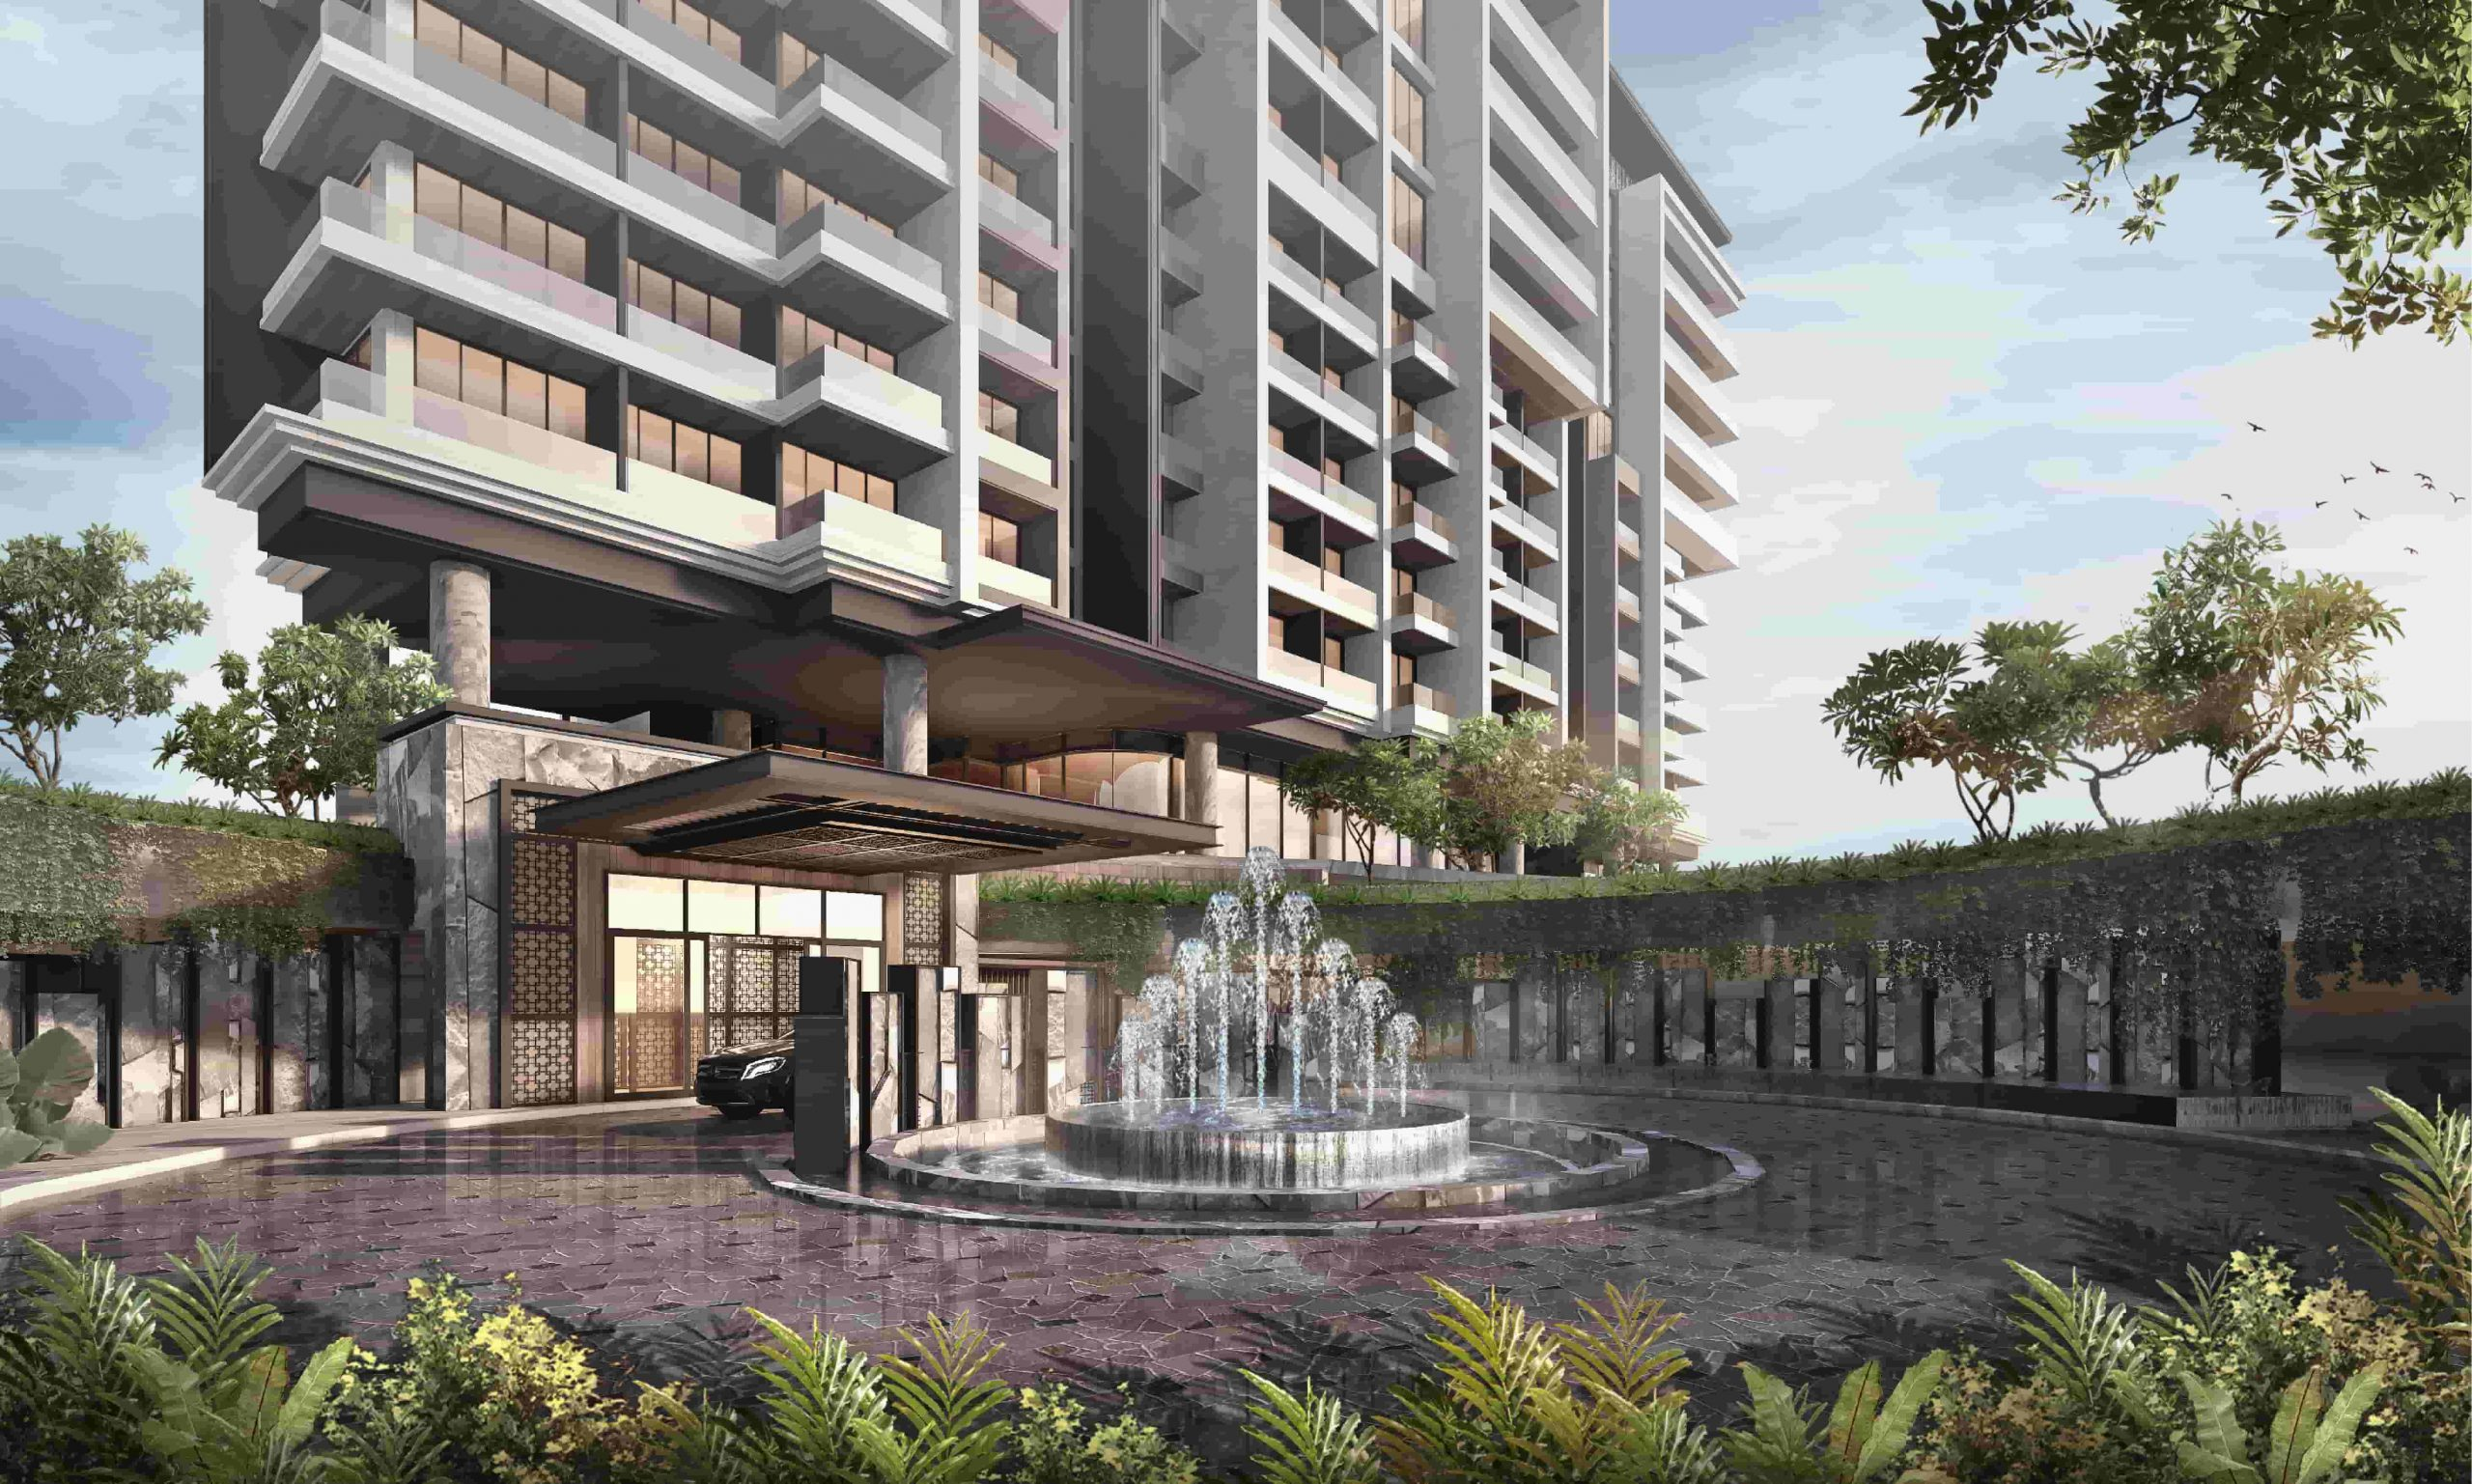 2018-11-08_IHG Halong Bay Final Concept_hires - HD comments40-01-01-min